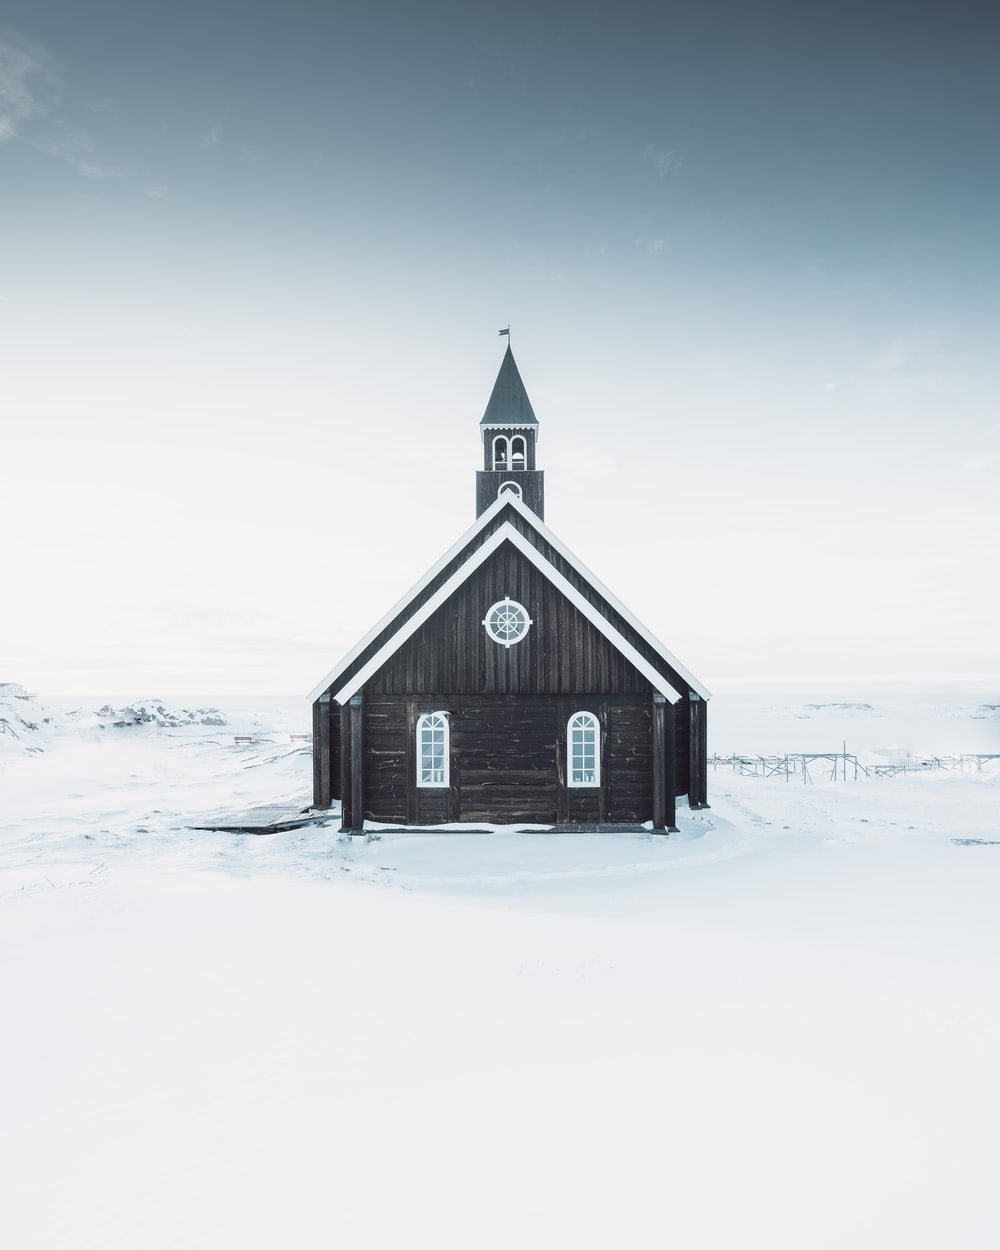 black wooden house on snow covered ground under gray sky